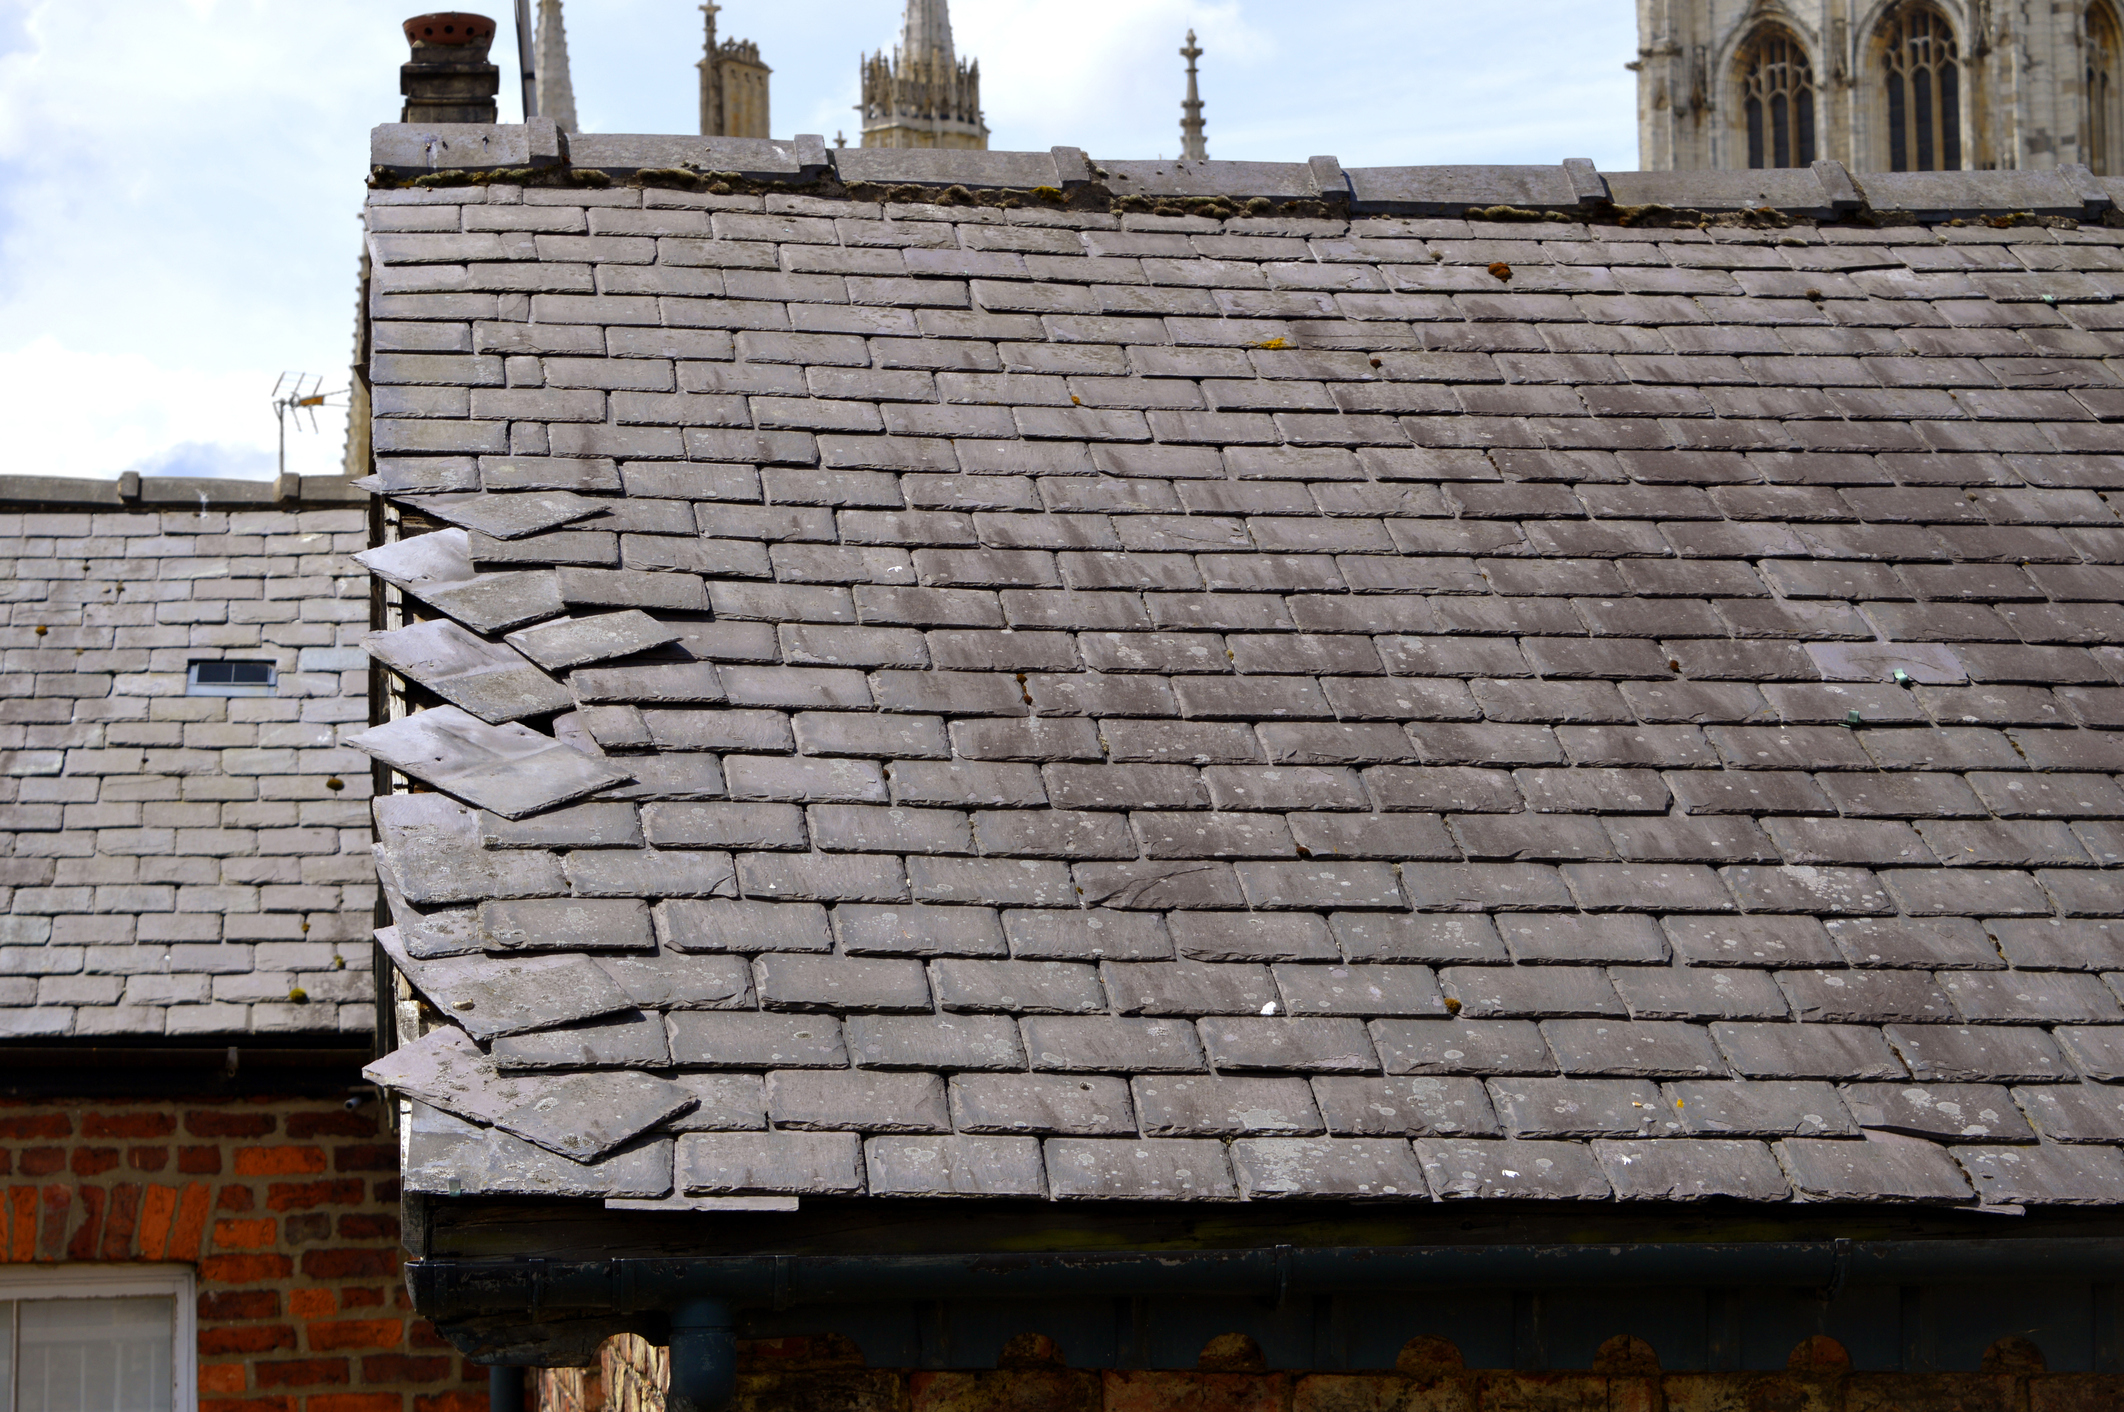 Loose slates on a house roof